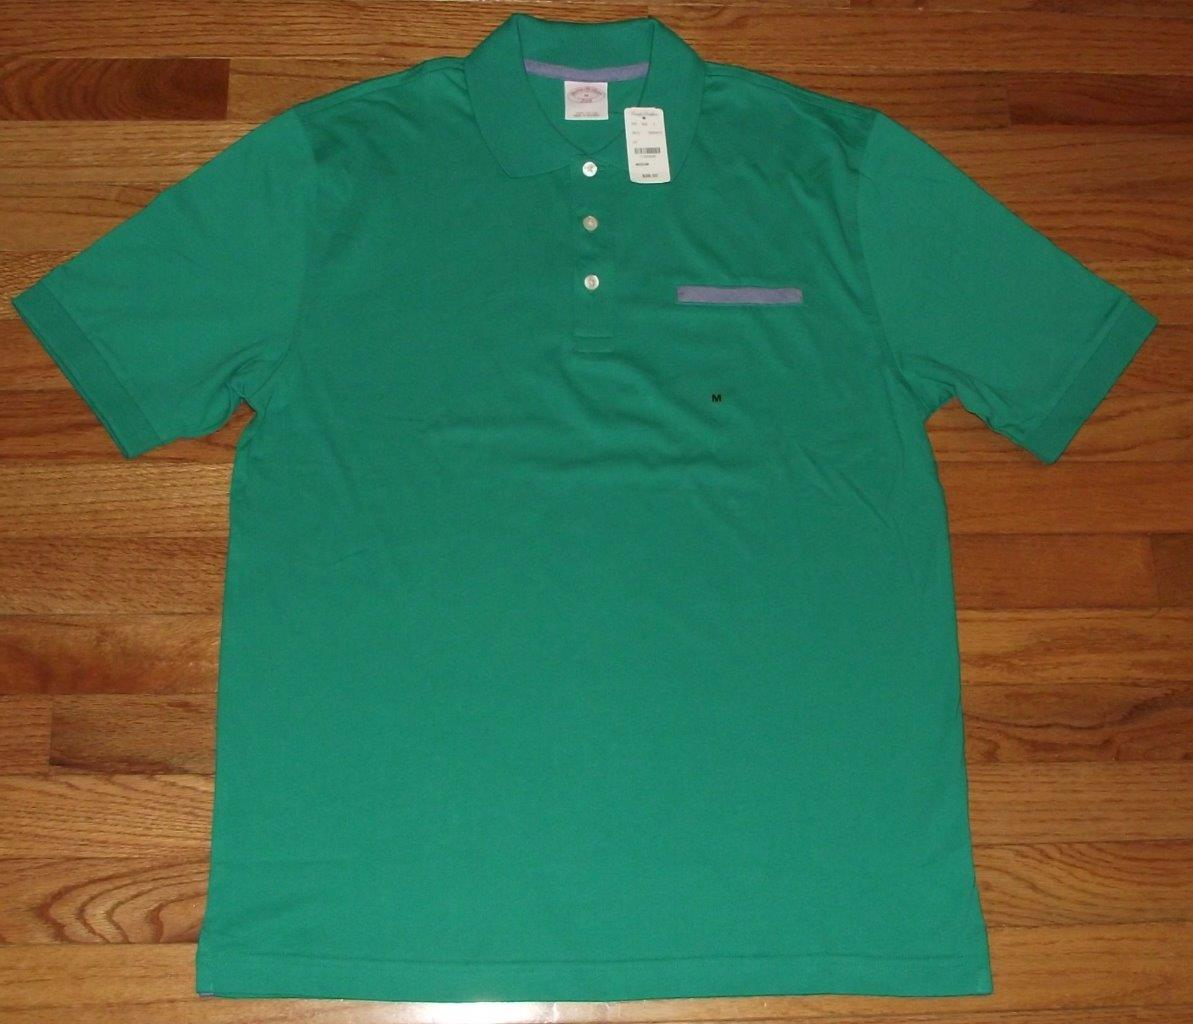 Nwt new brooks brothers mens jersey knit polo shirt fake for Men s polo shirts with chest pocket